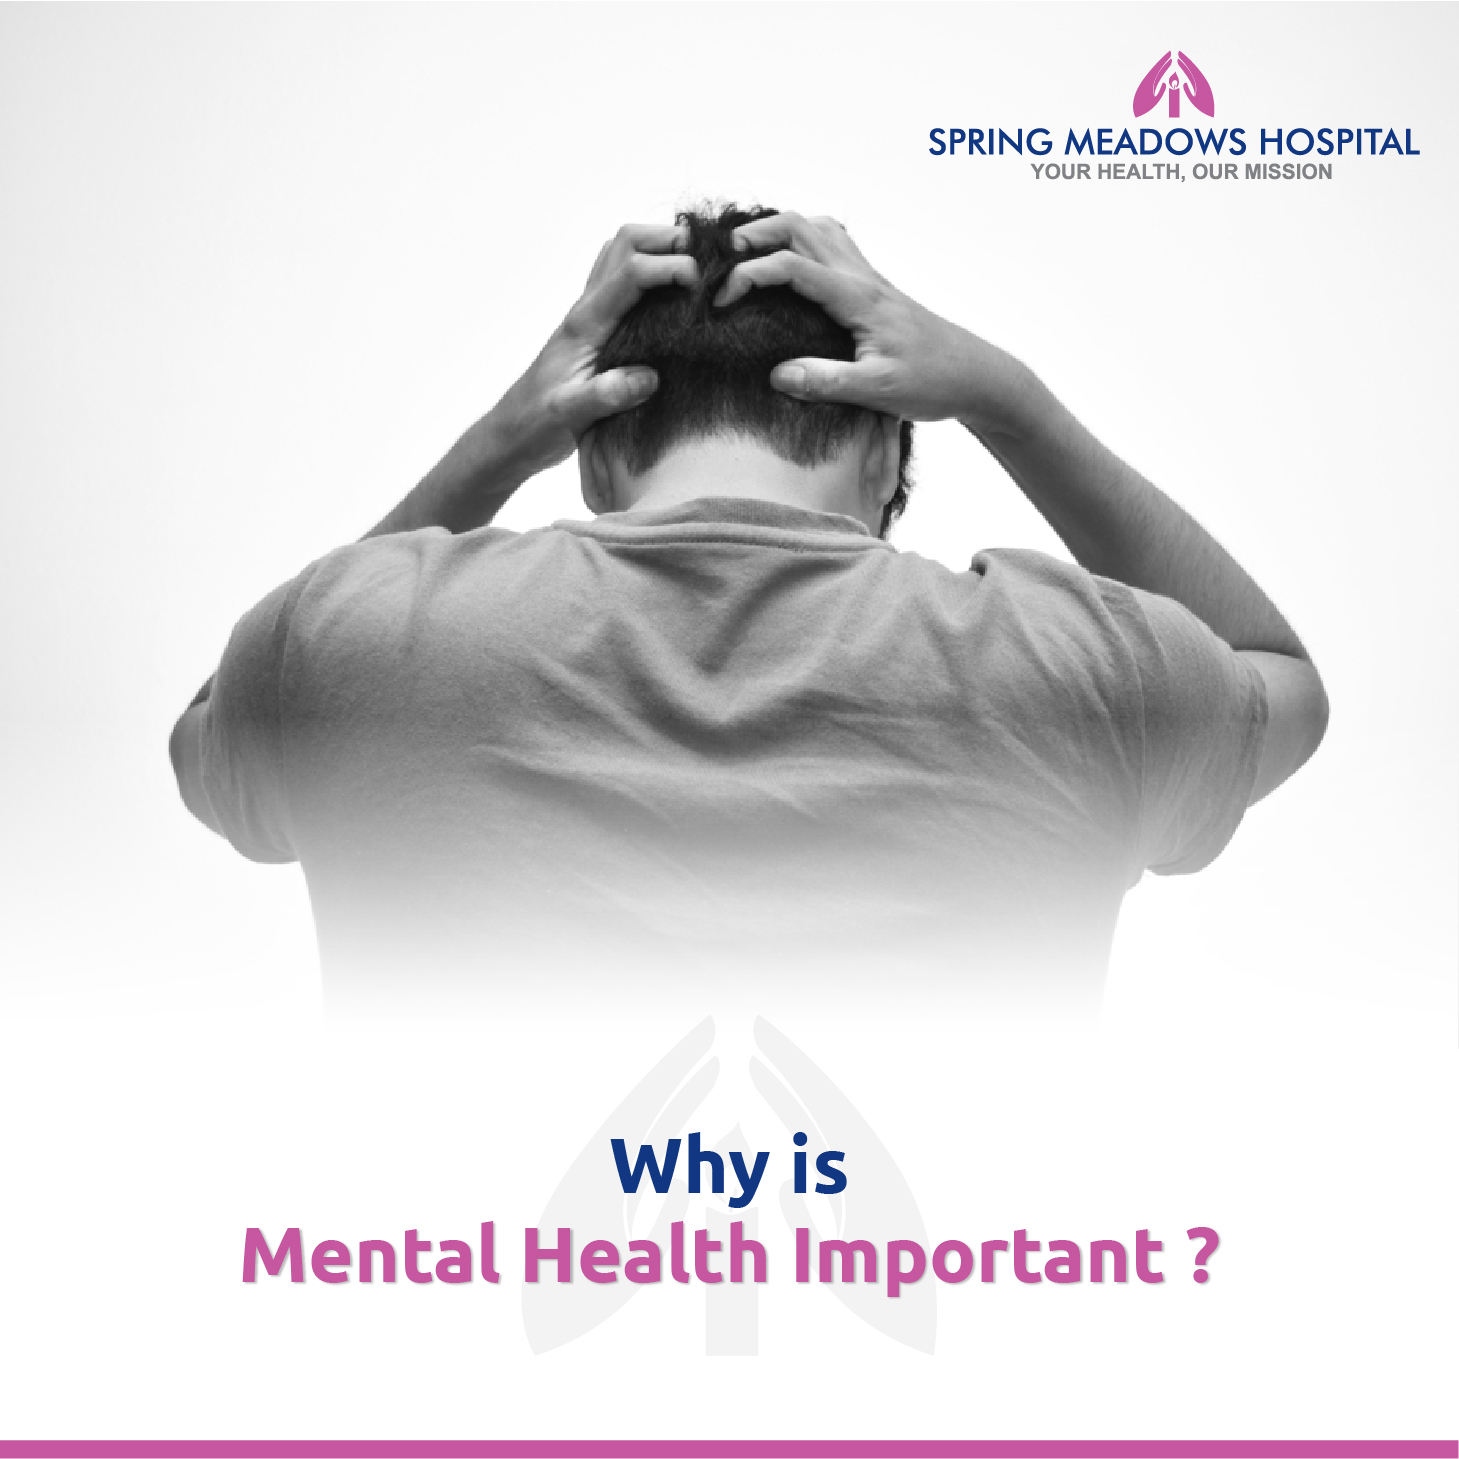 Mental Health, Importance, Well-Being, and Health Aspects